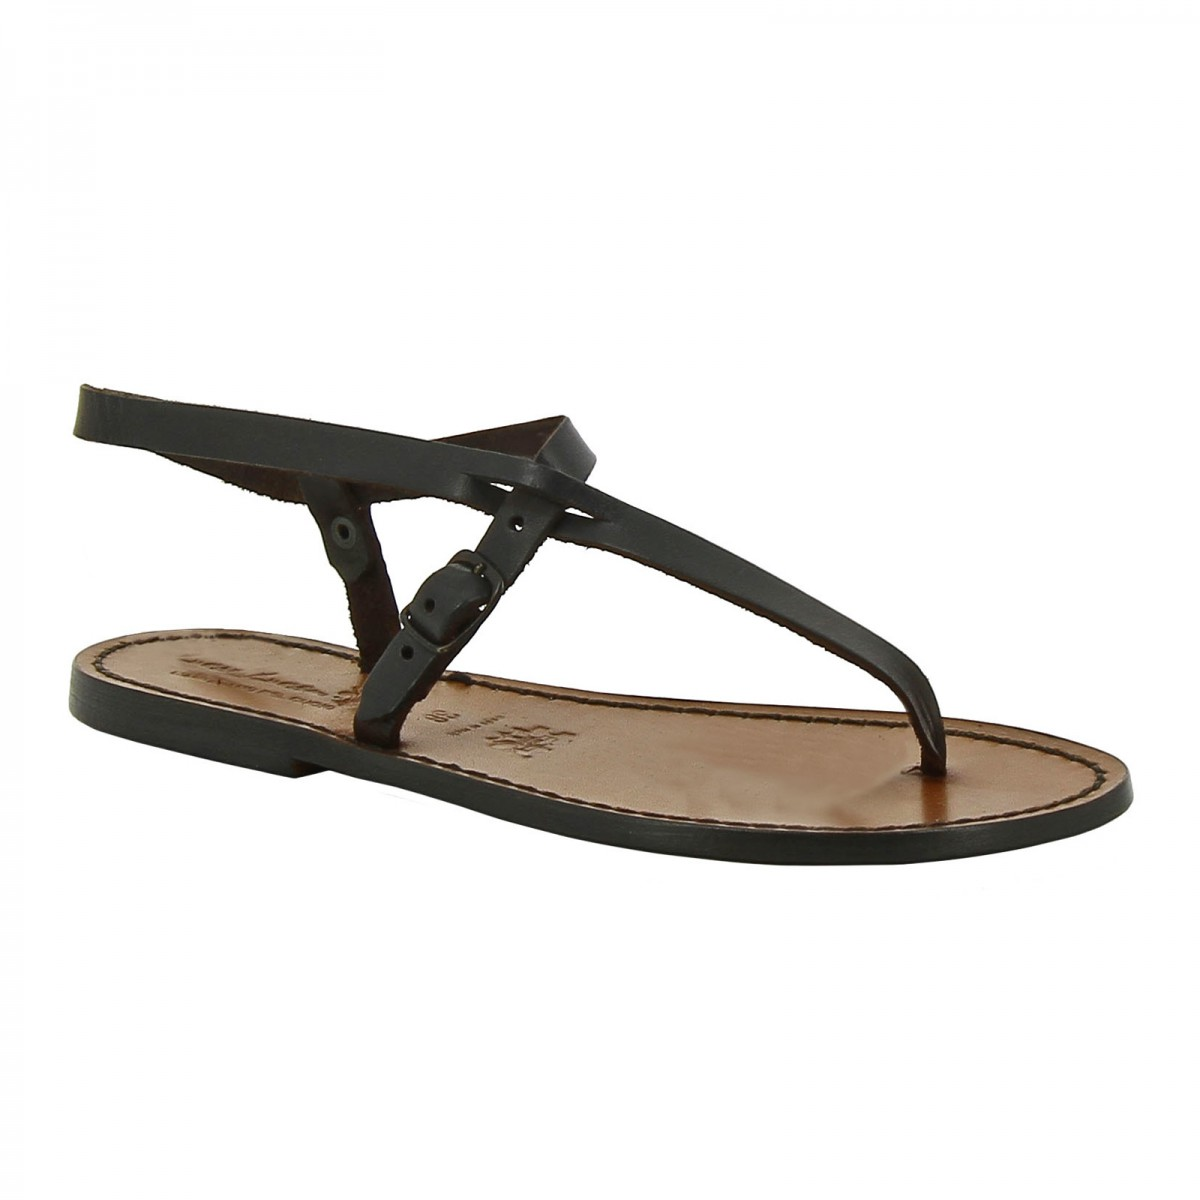 62fcab201 Handmade leather thong sandals for women in dark brown. Loading zoom